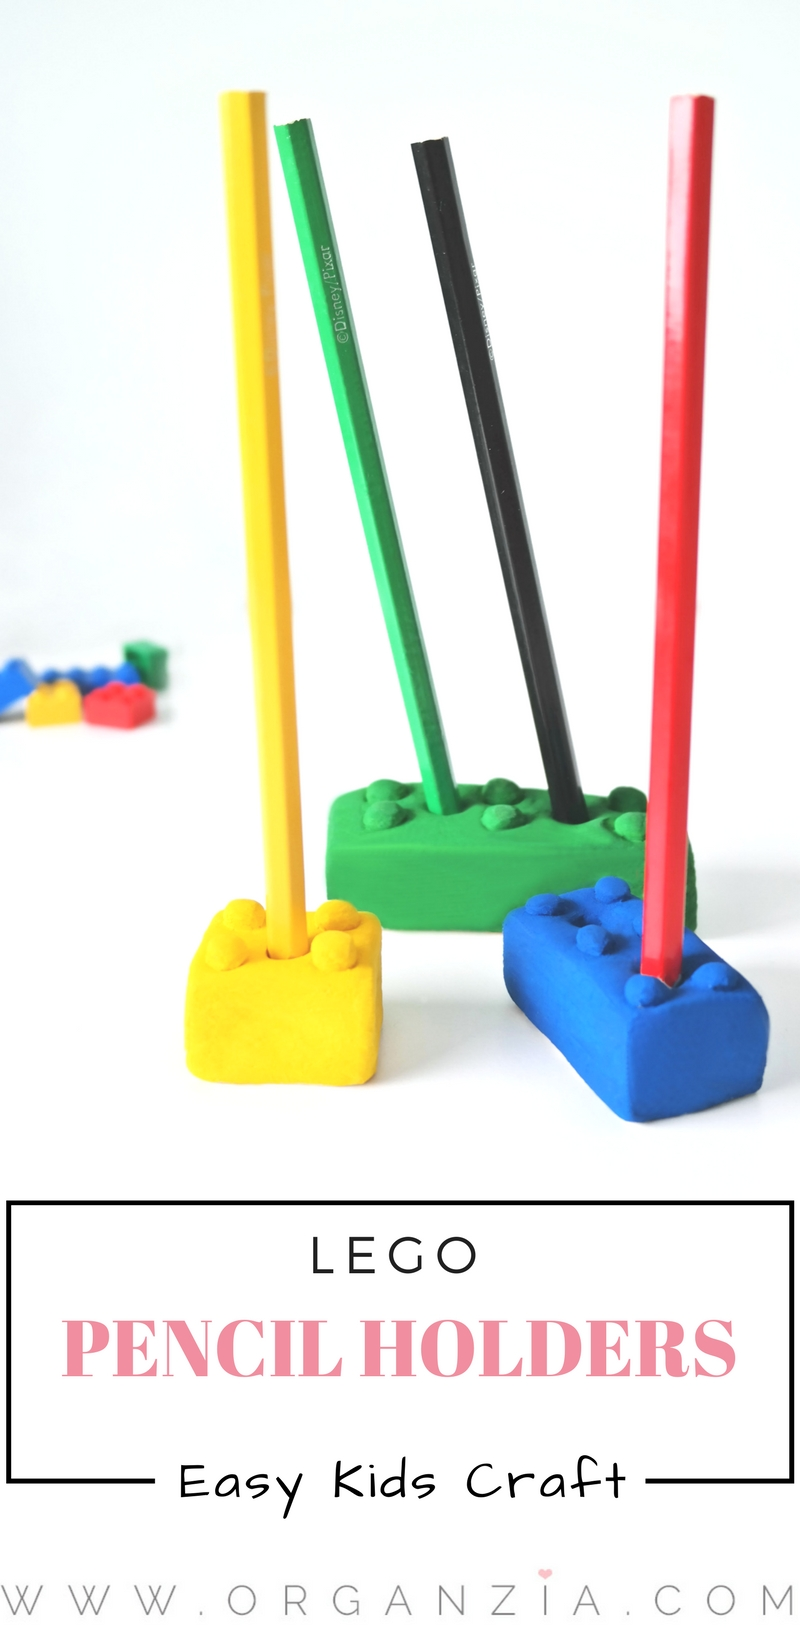 Kids craft - Lego pencil holders